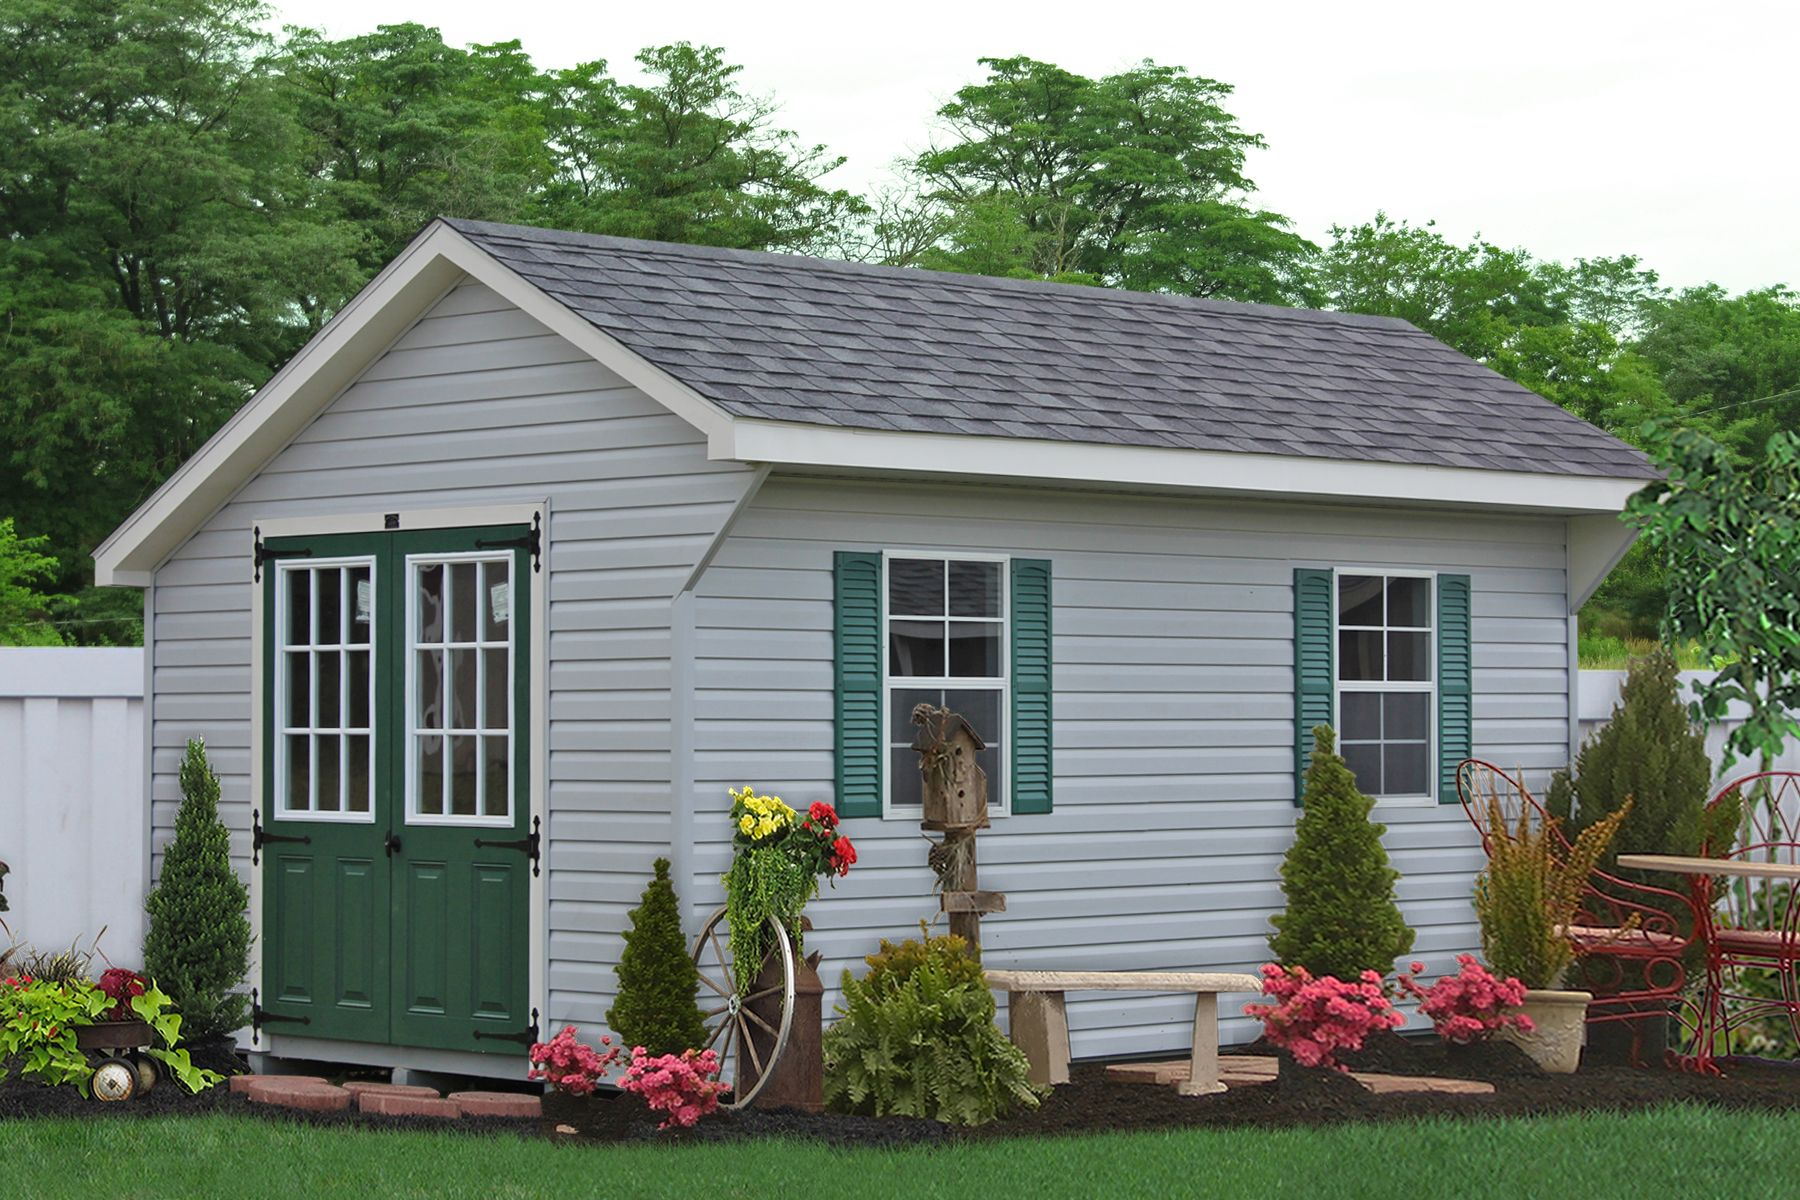 Vinyl Sided Shed For Sale In Lancaster Pa Buy A Vinyl